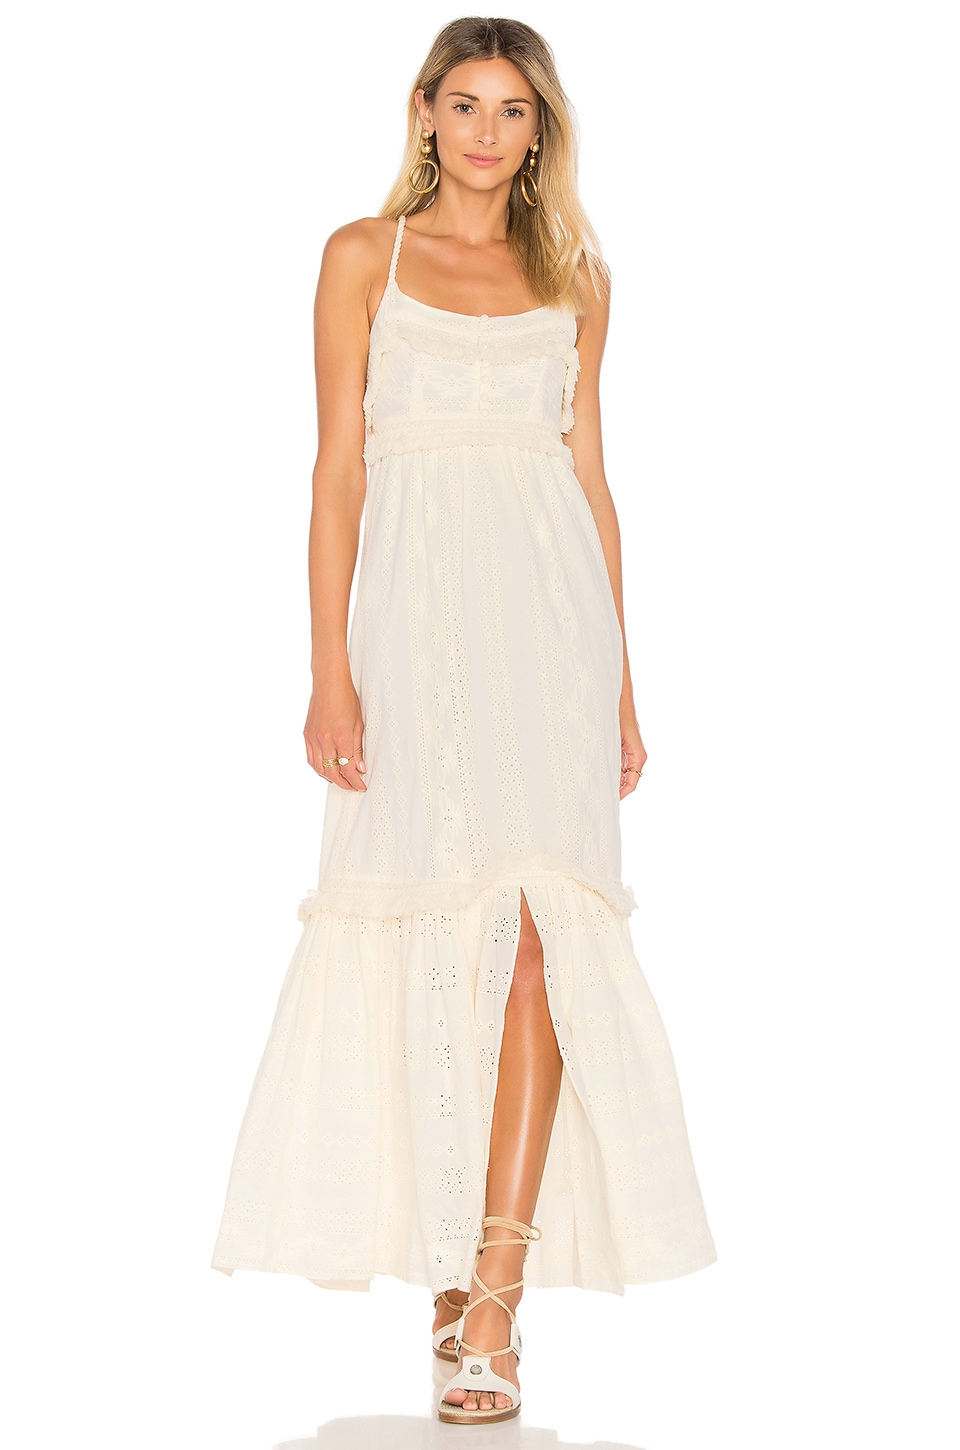 Riley Dress by RACHEL ZOE